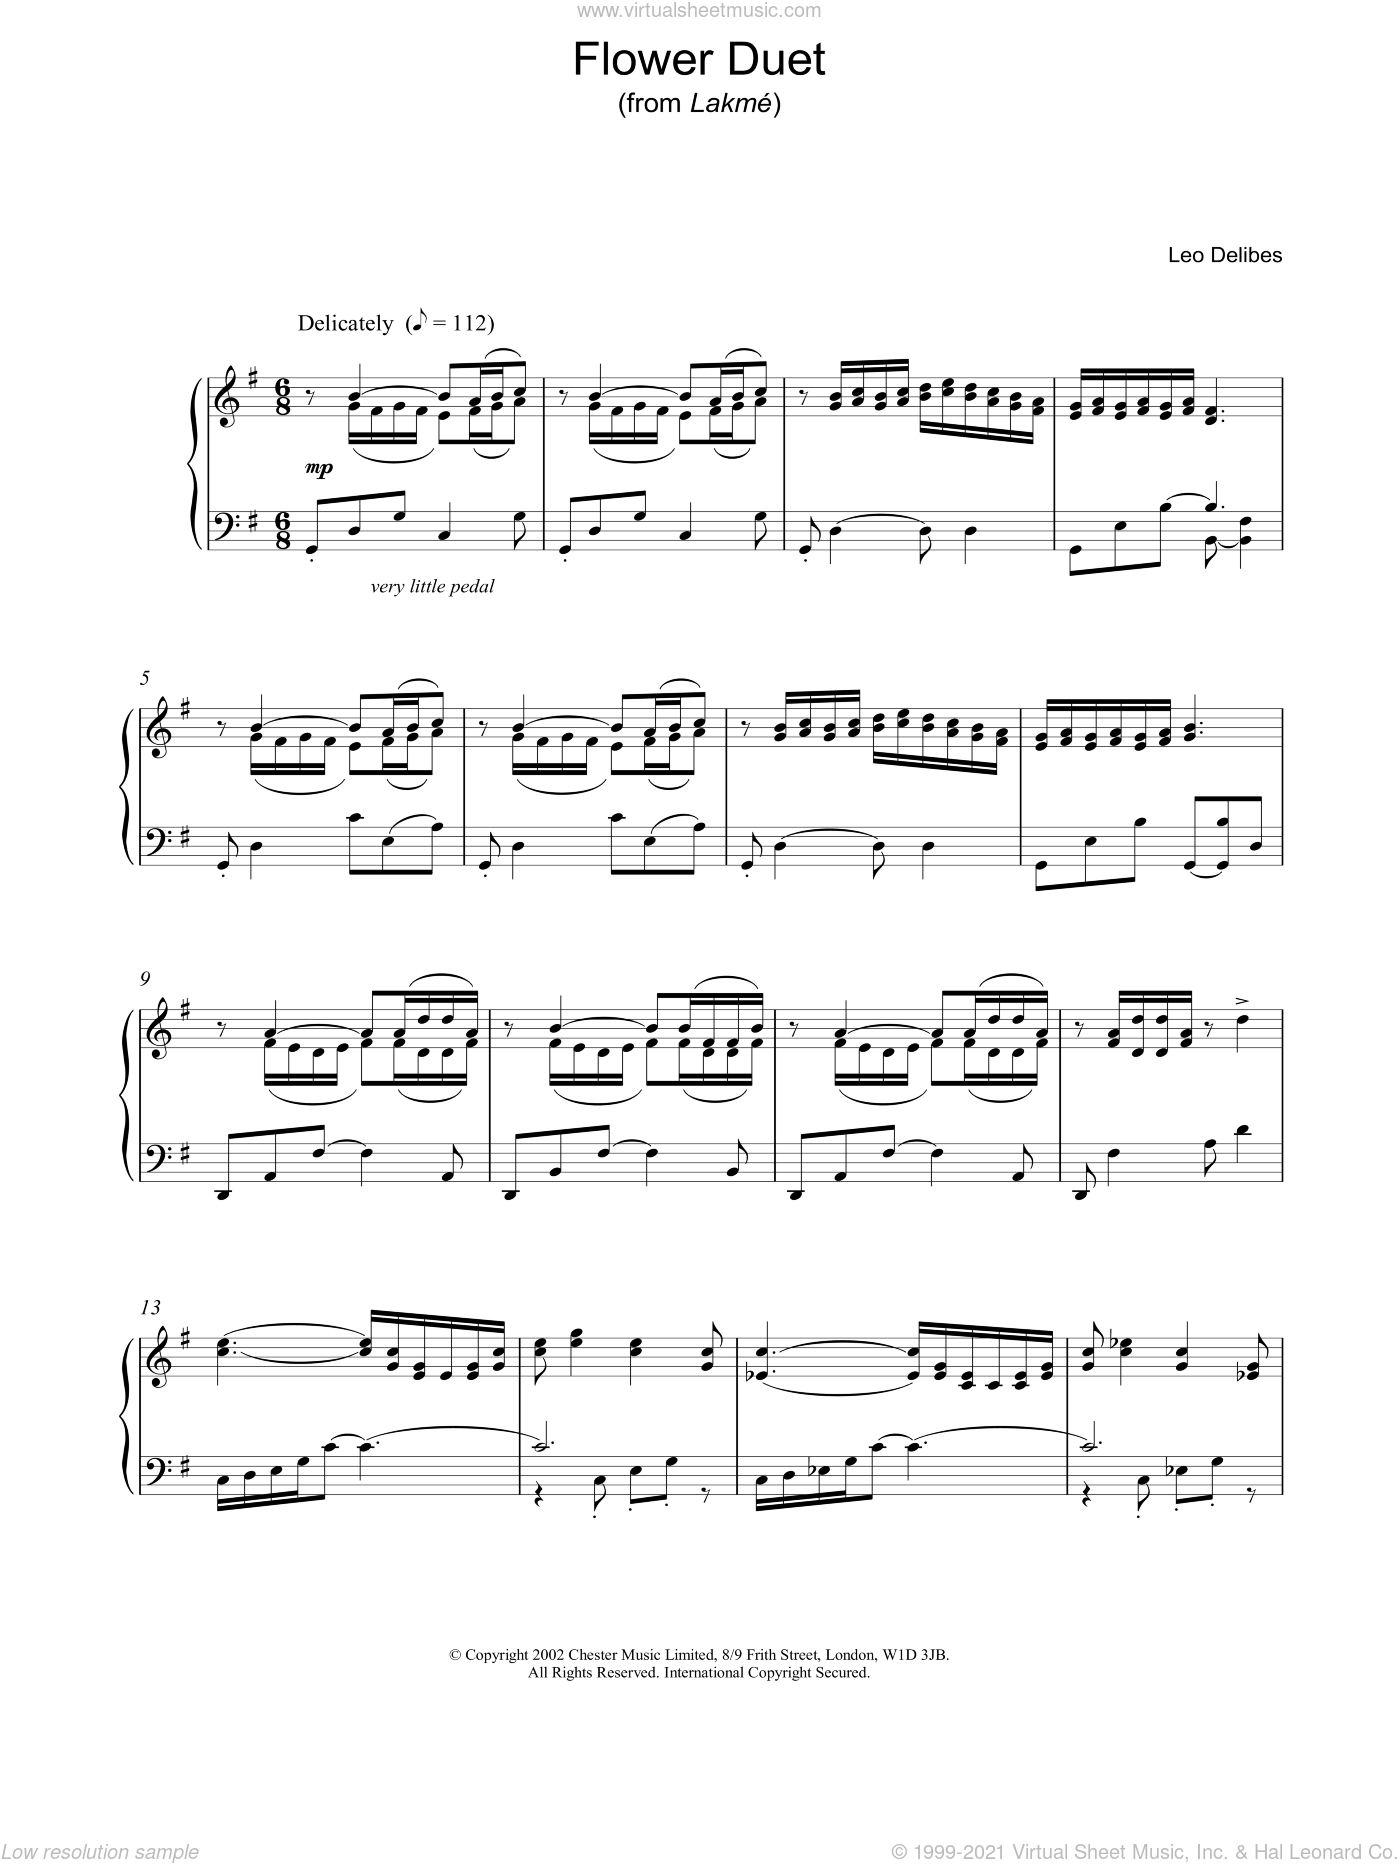 Flower Duet sheet music for piano solo by Leo Delibes